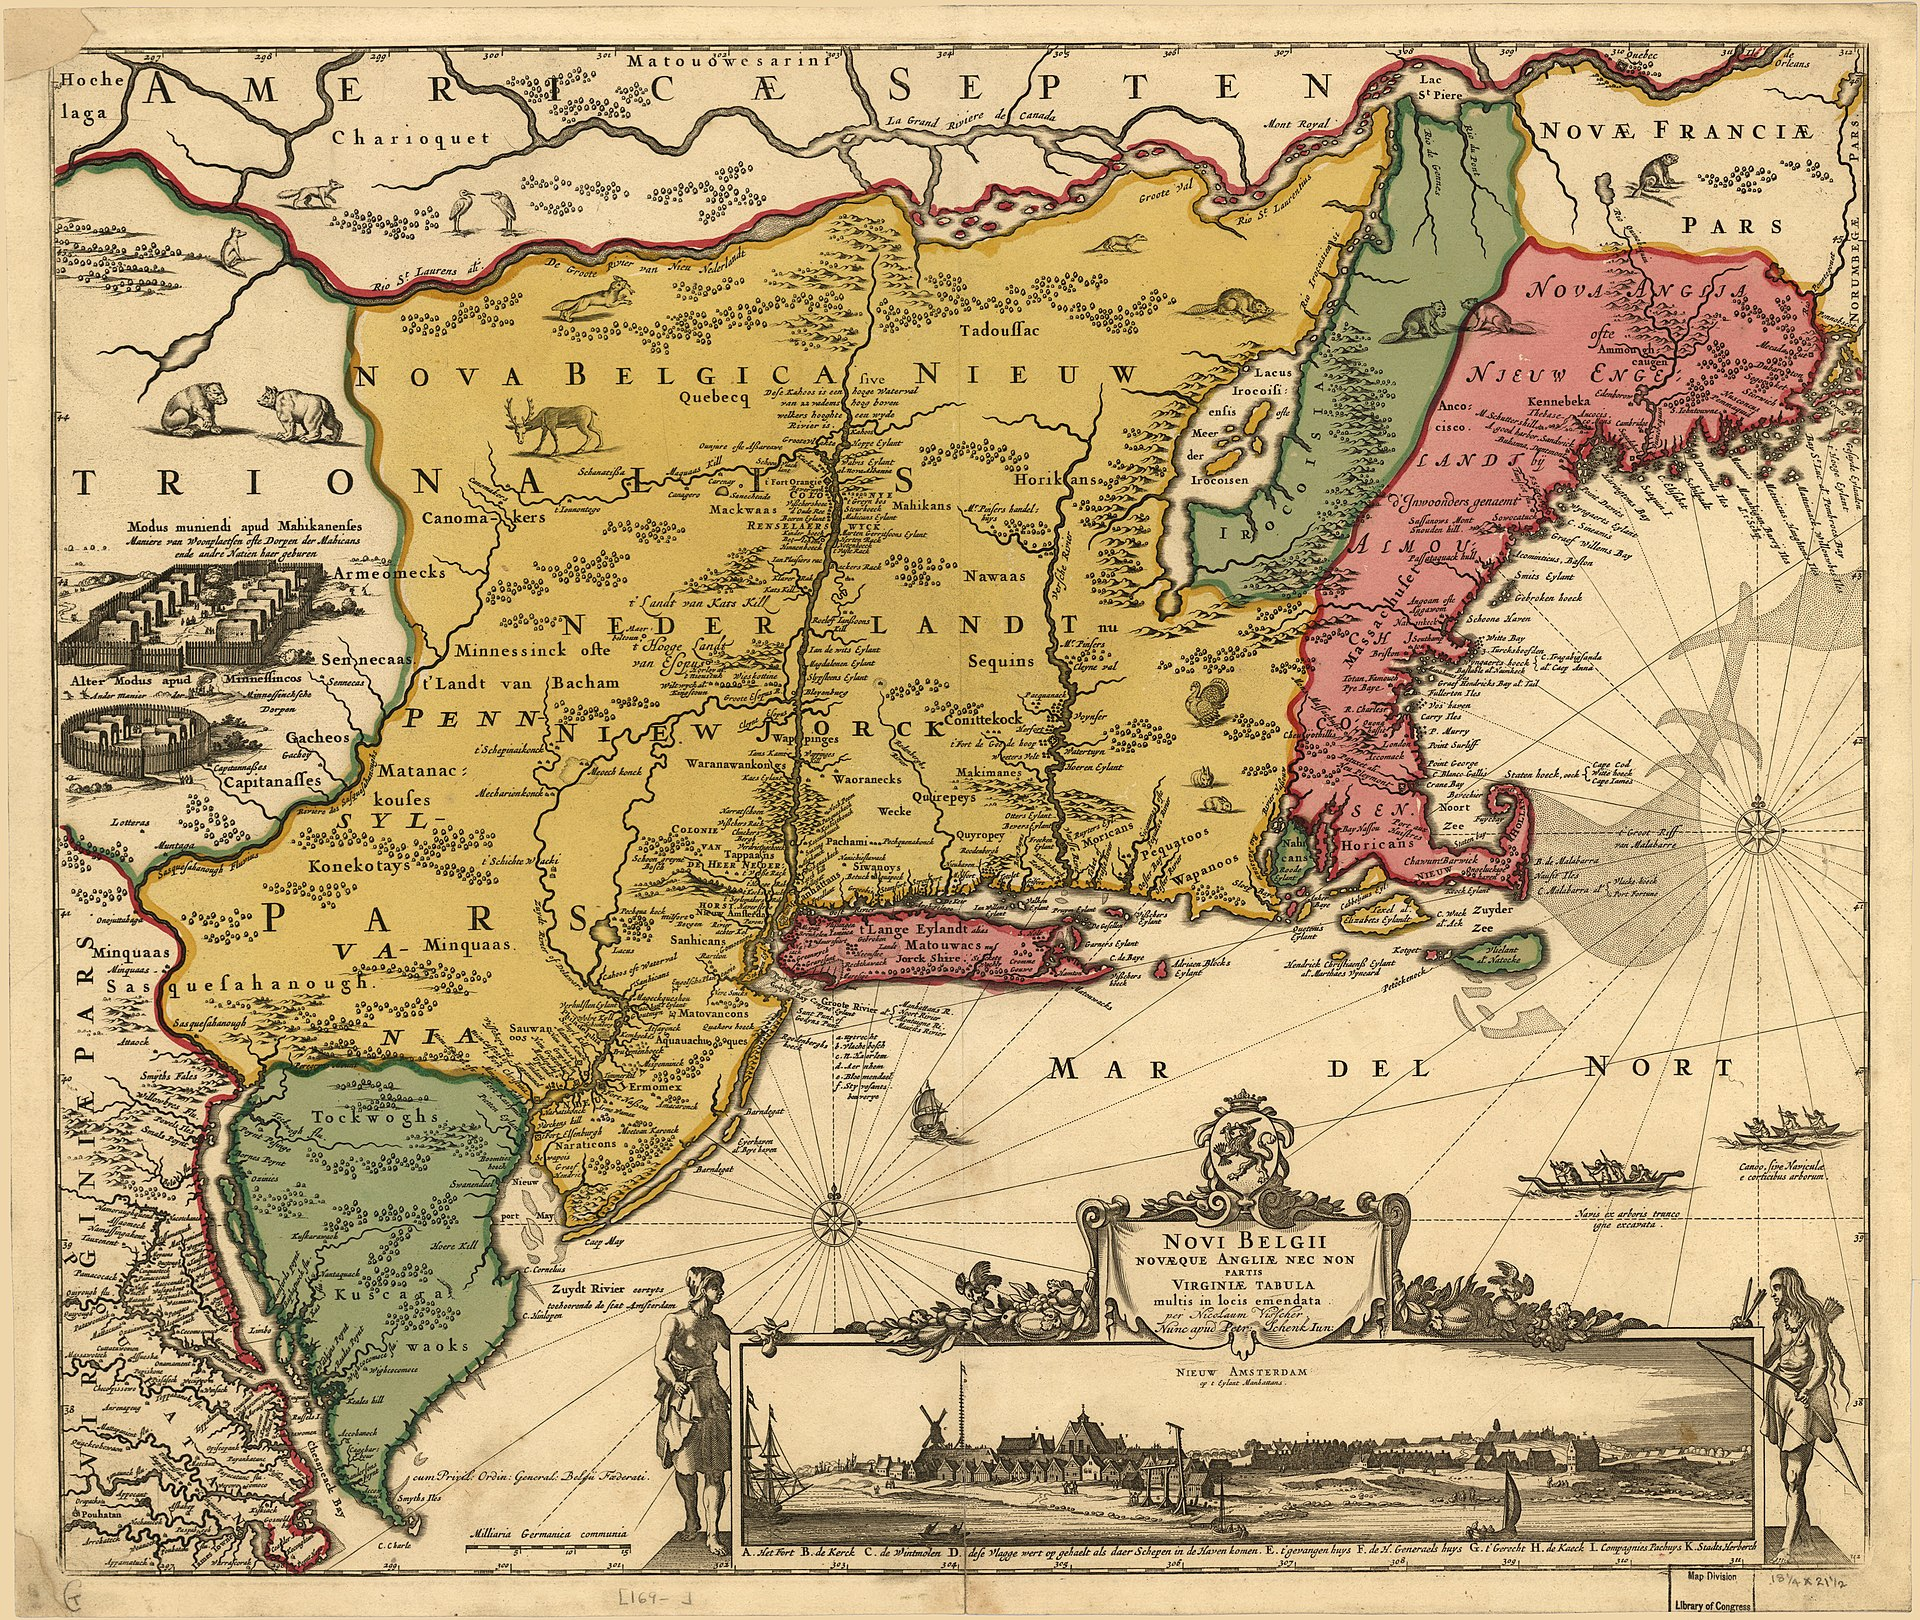 Map of New England Colonies